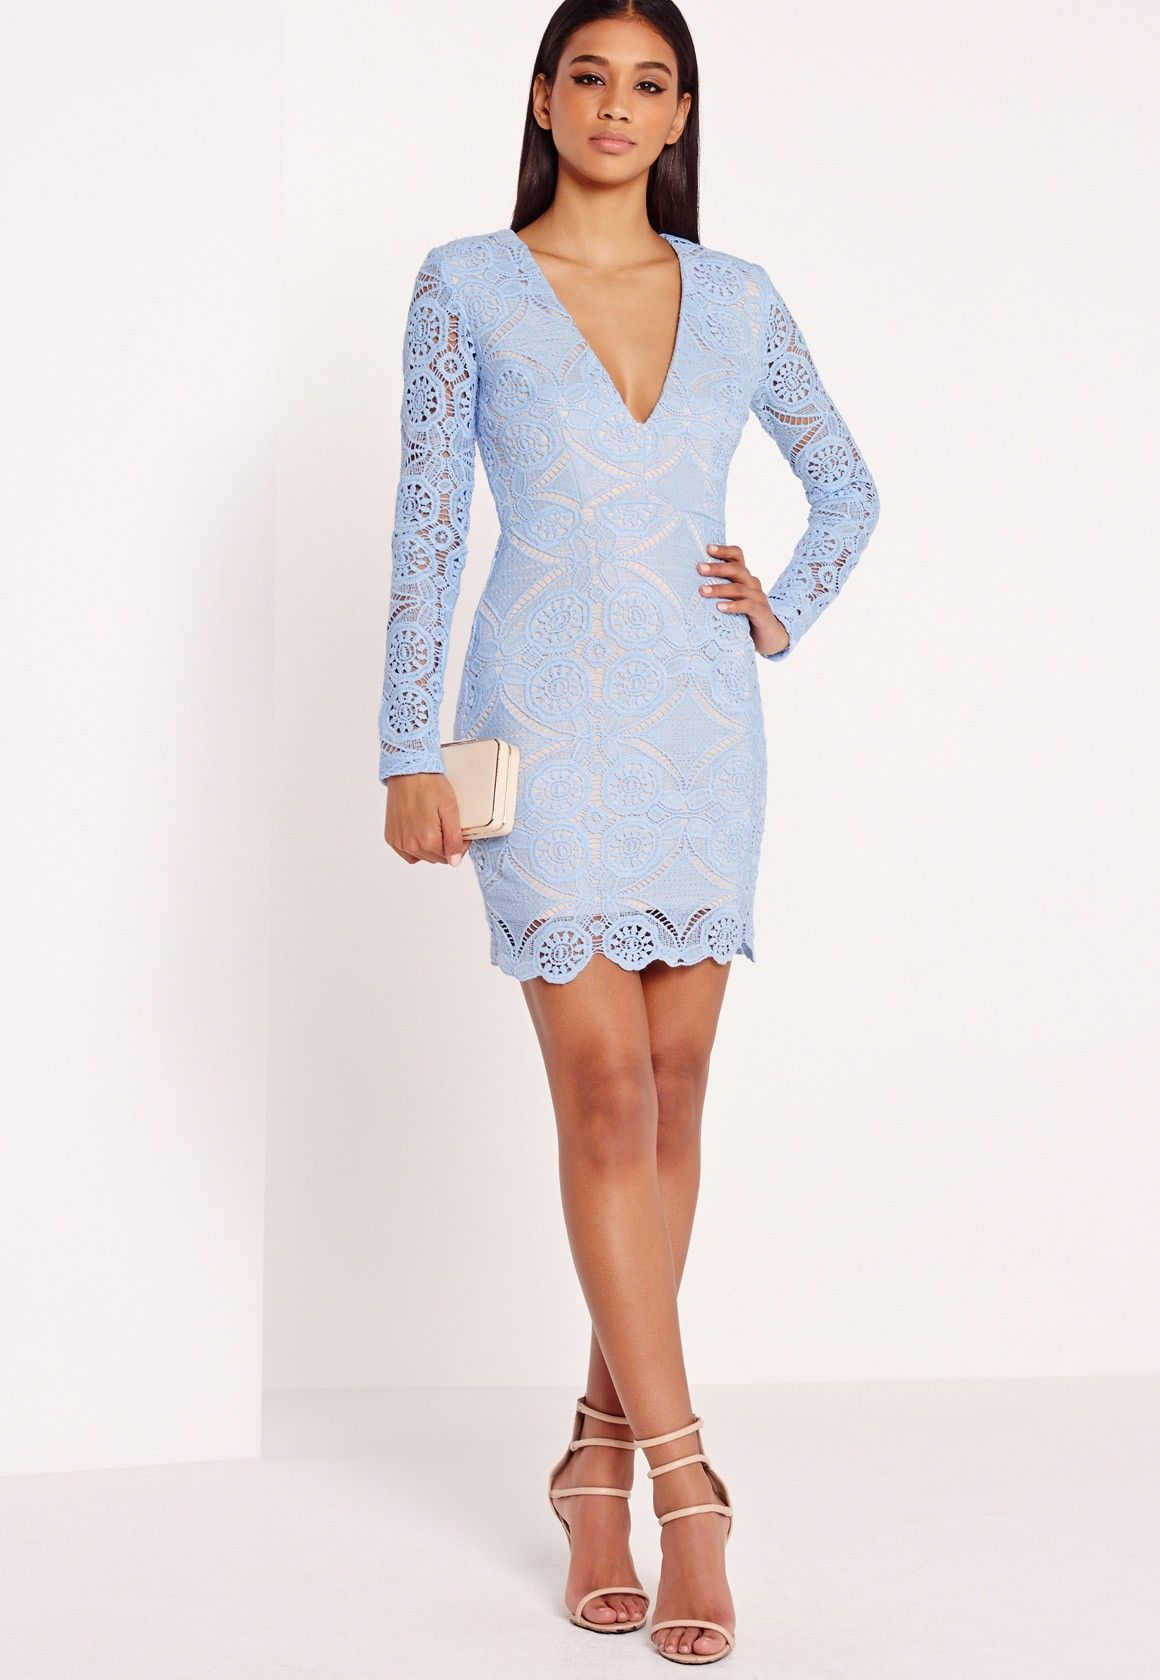 Missguided Lace Long Sleeve Bodycon Dress In Blue 56 Lace Bodycon Dress Long Sleeve Dresses Women S Evening Dresses [ 1680 x 1160 Pixel ]